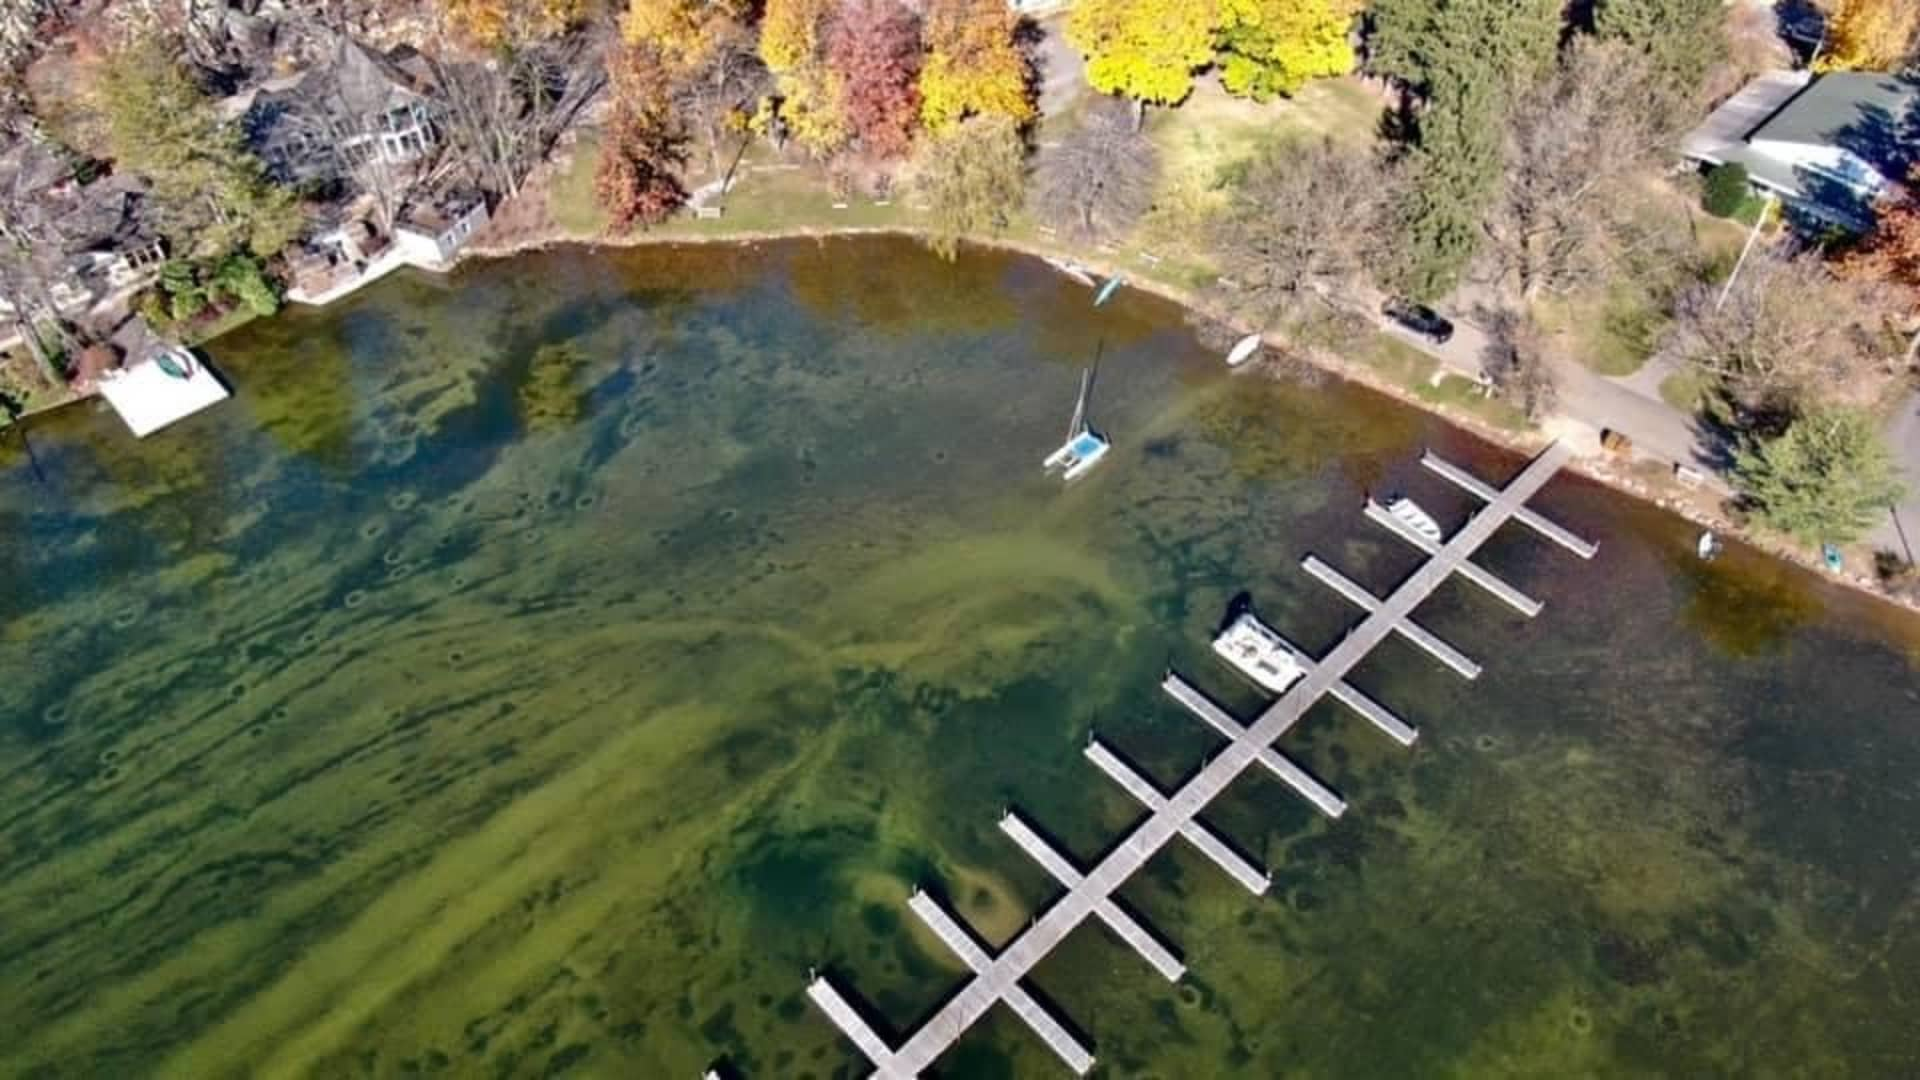 An aerial view of Green Pond Lake shows the damage and contamination milfoil has created, turning the lake a green color and making it uninhabitable for native species -- and swimmers.